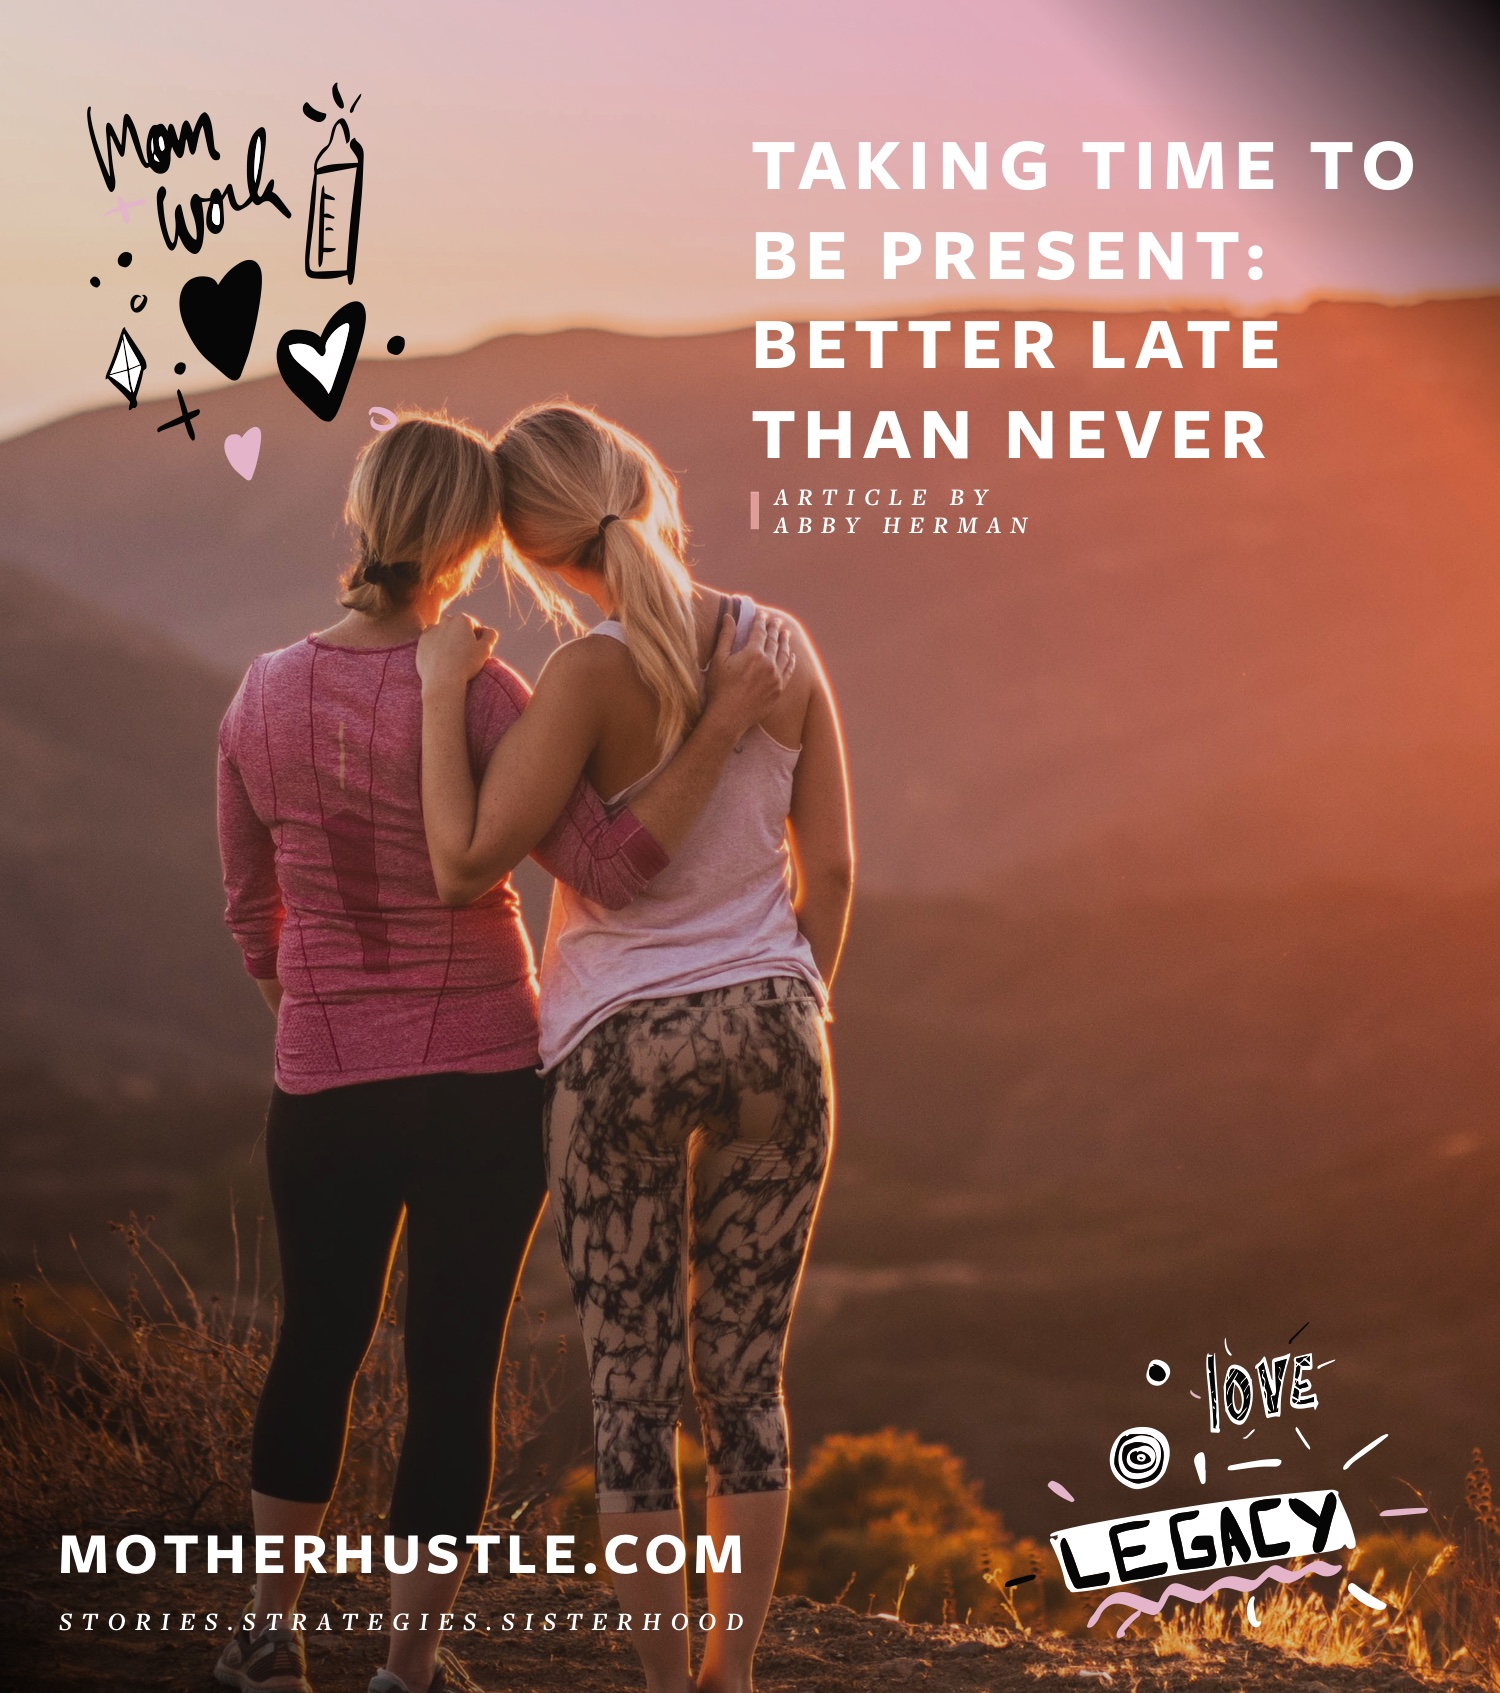 Taking Time To Be Present- Better Late Than Never - by Abby Herman for MotherHustle